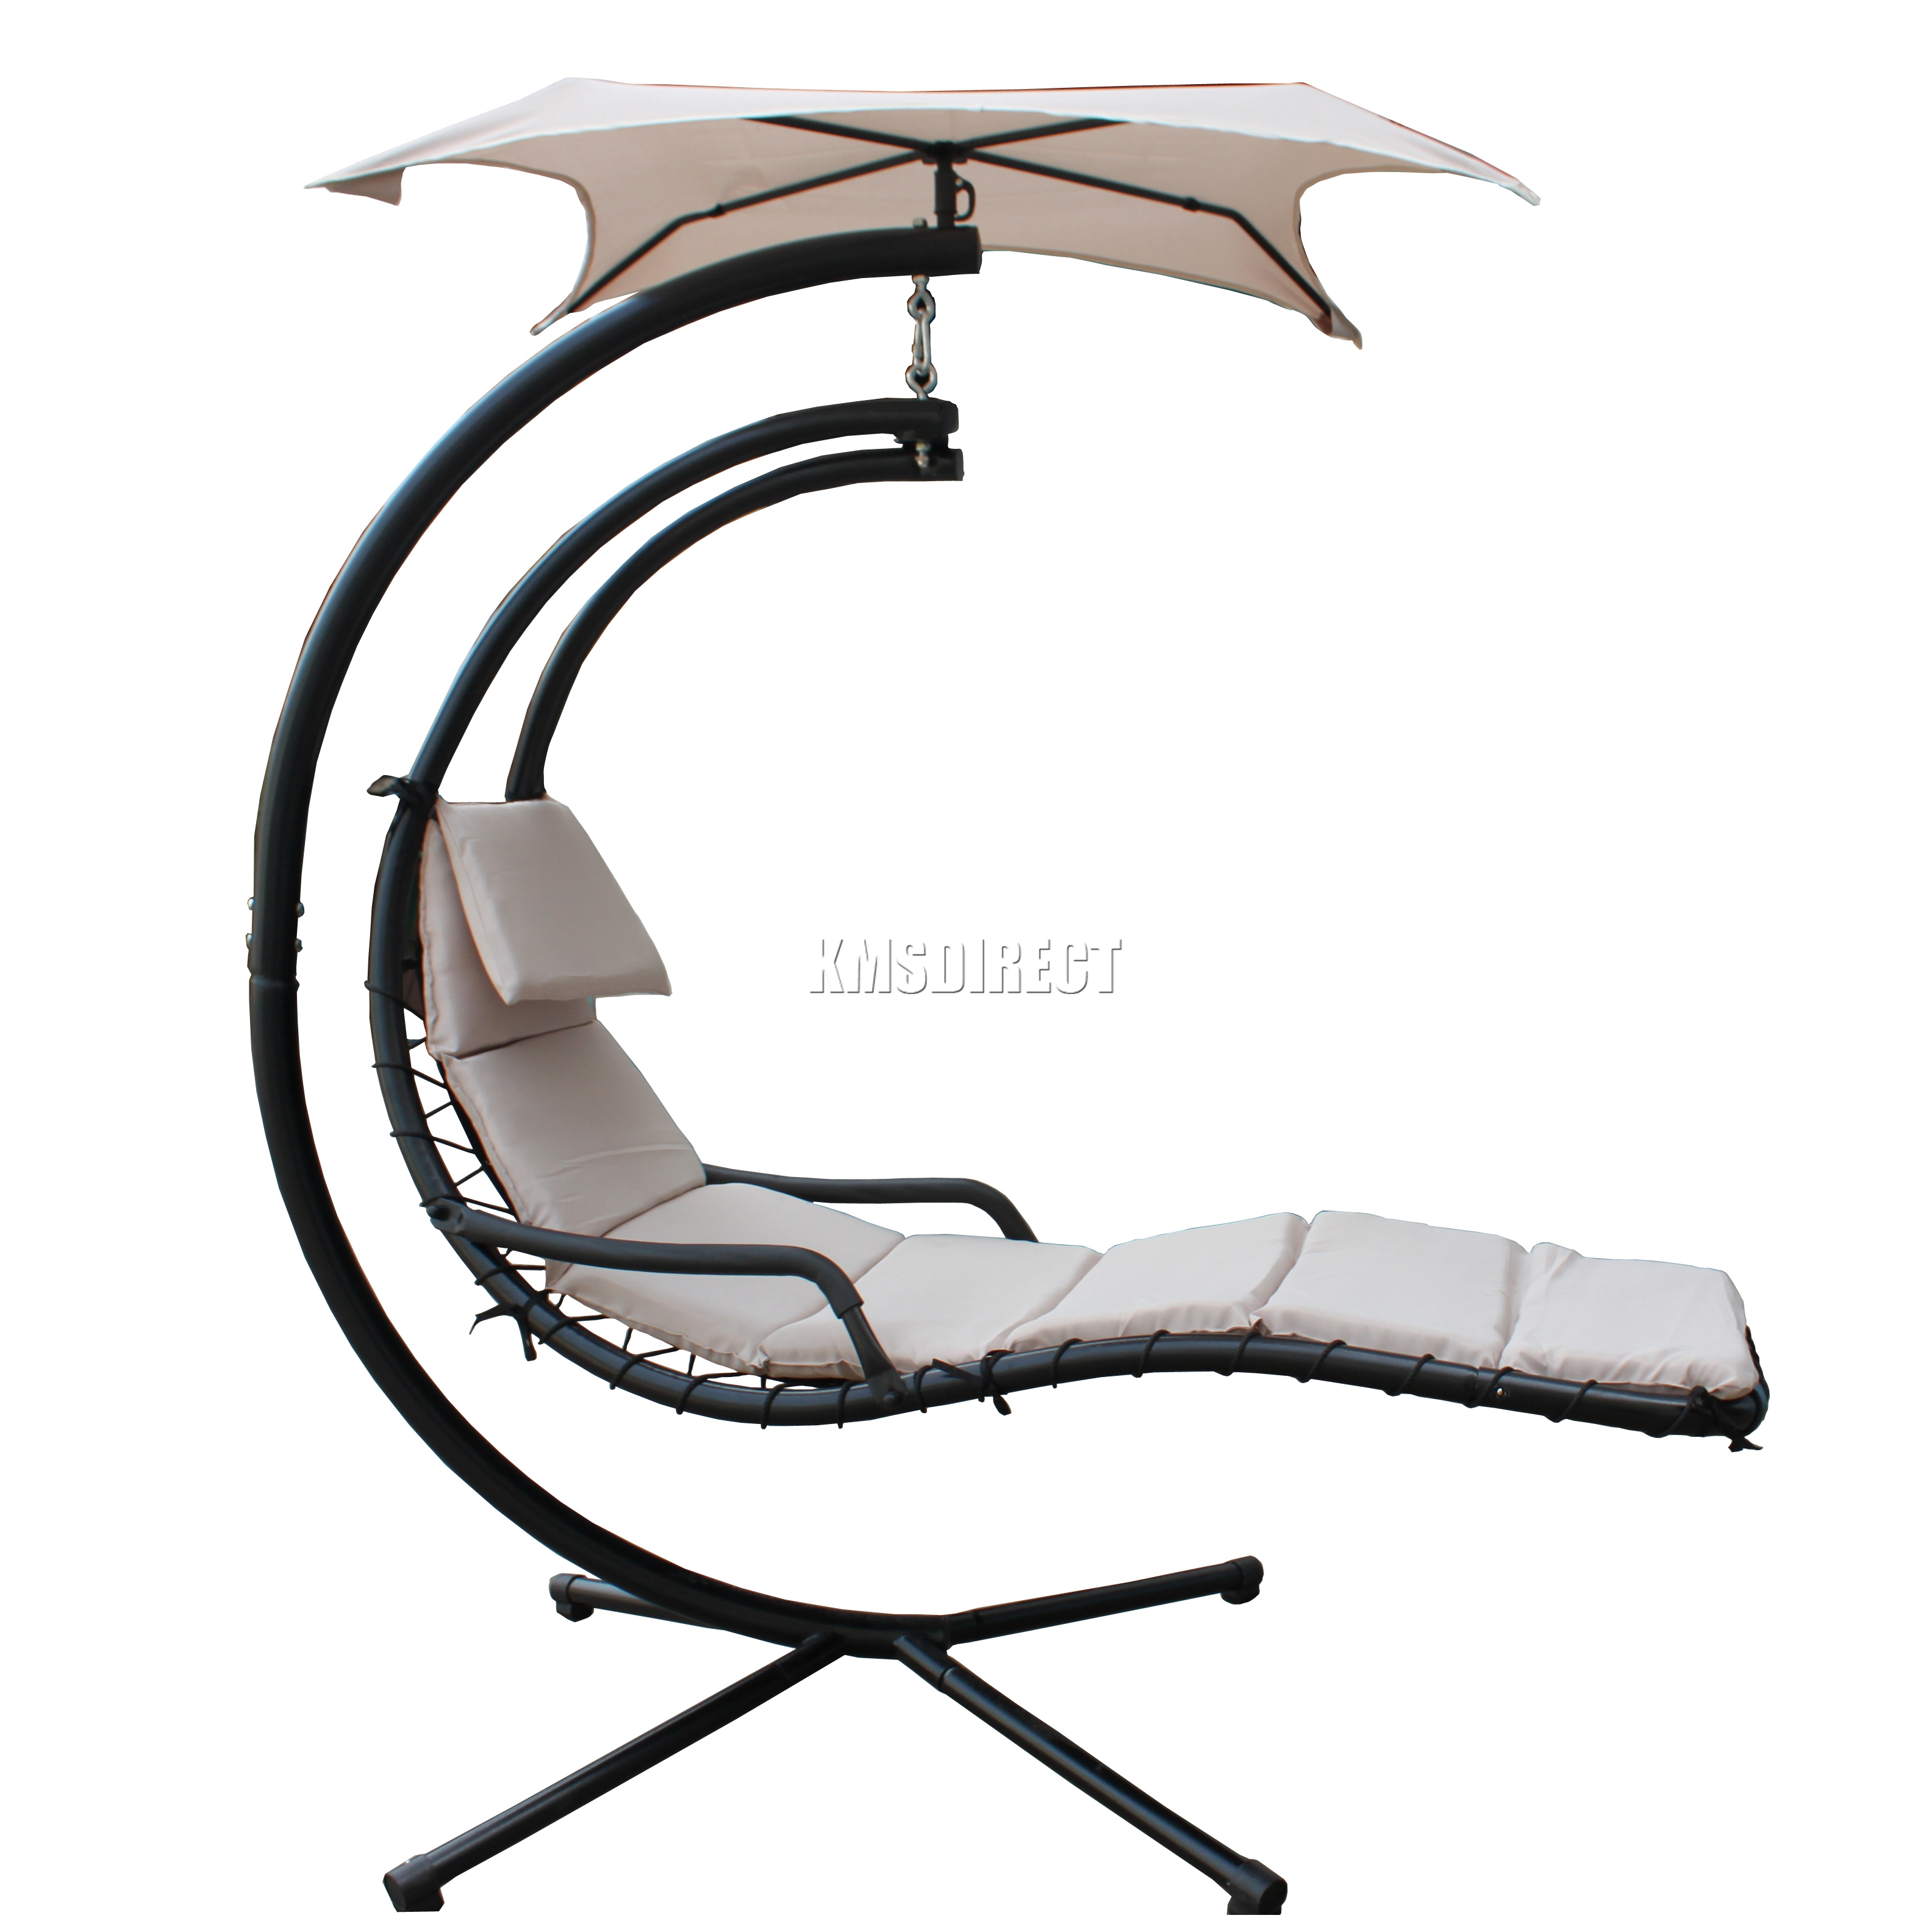 FoxHunter-Garden-Outdoor-Helicopter-Dream-Chair-Swing-Hammock-  sc 1 st  eBay : dream chair swinging chaise lounge - Sectionals, Sofas & Couches